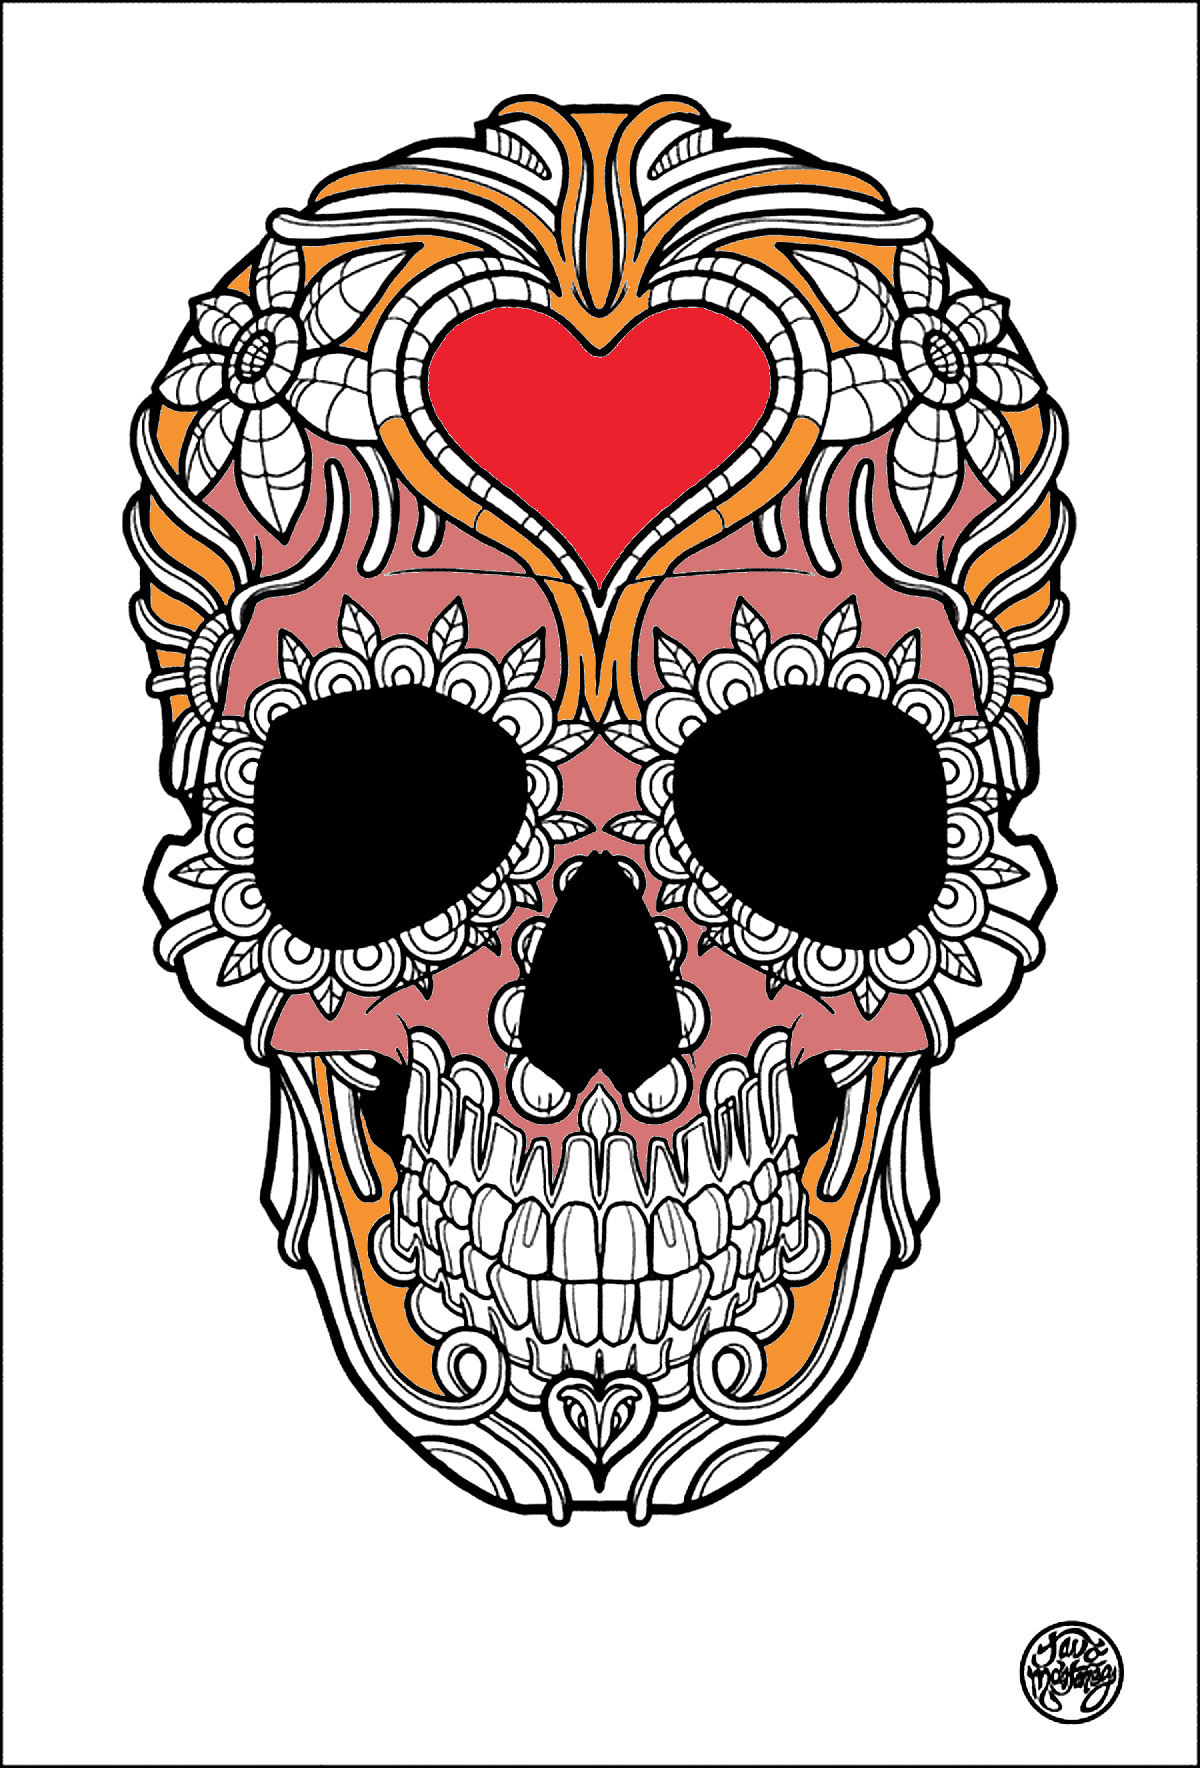 Coloring Pages Tattoos Coloring Pages tattoos coloring pages for adults